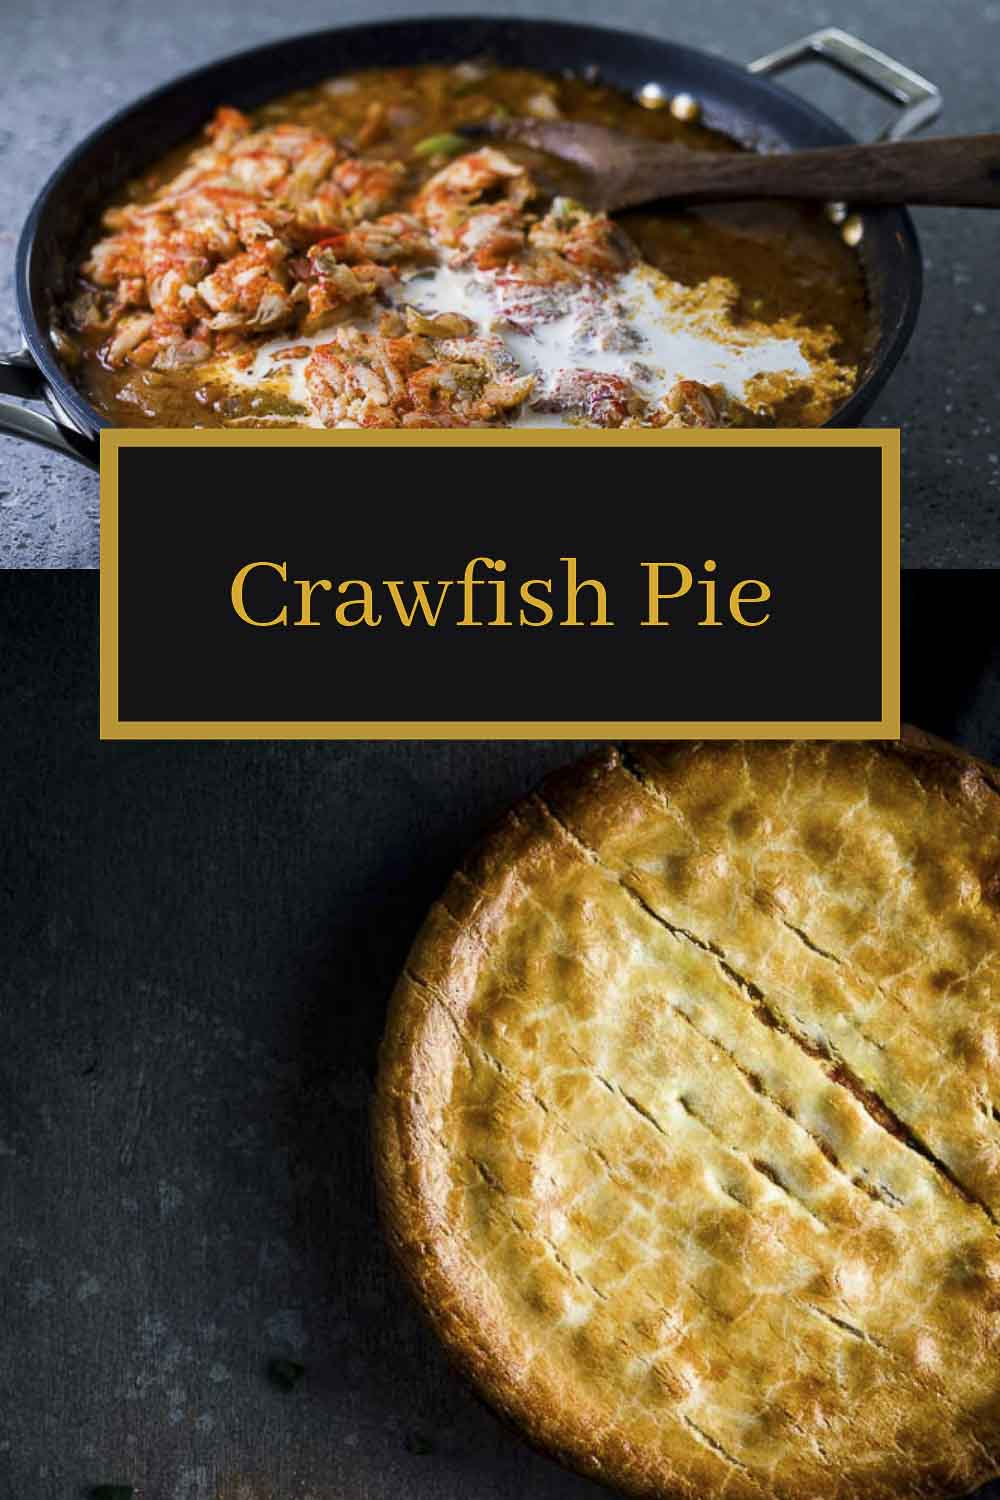 This Crawfish Pie is made with the most amazing rich crawfish etouffee stuffed inside a buttery pie crust and baked until golden brown and bubbly. Comfort food at it\'s finest, this easy to make crawfish pie is full of flavor and spice and will impress even the pickiest of eaters! #wenthere8this #crawfishpie #crawfishseason